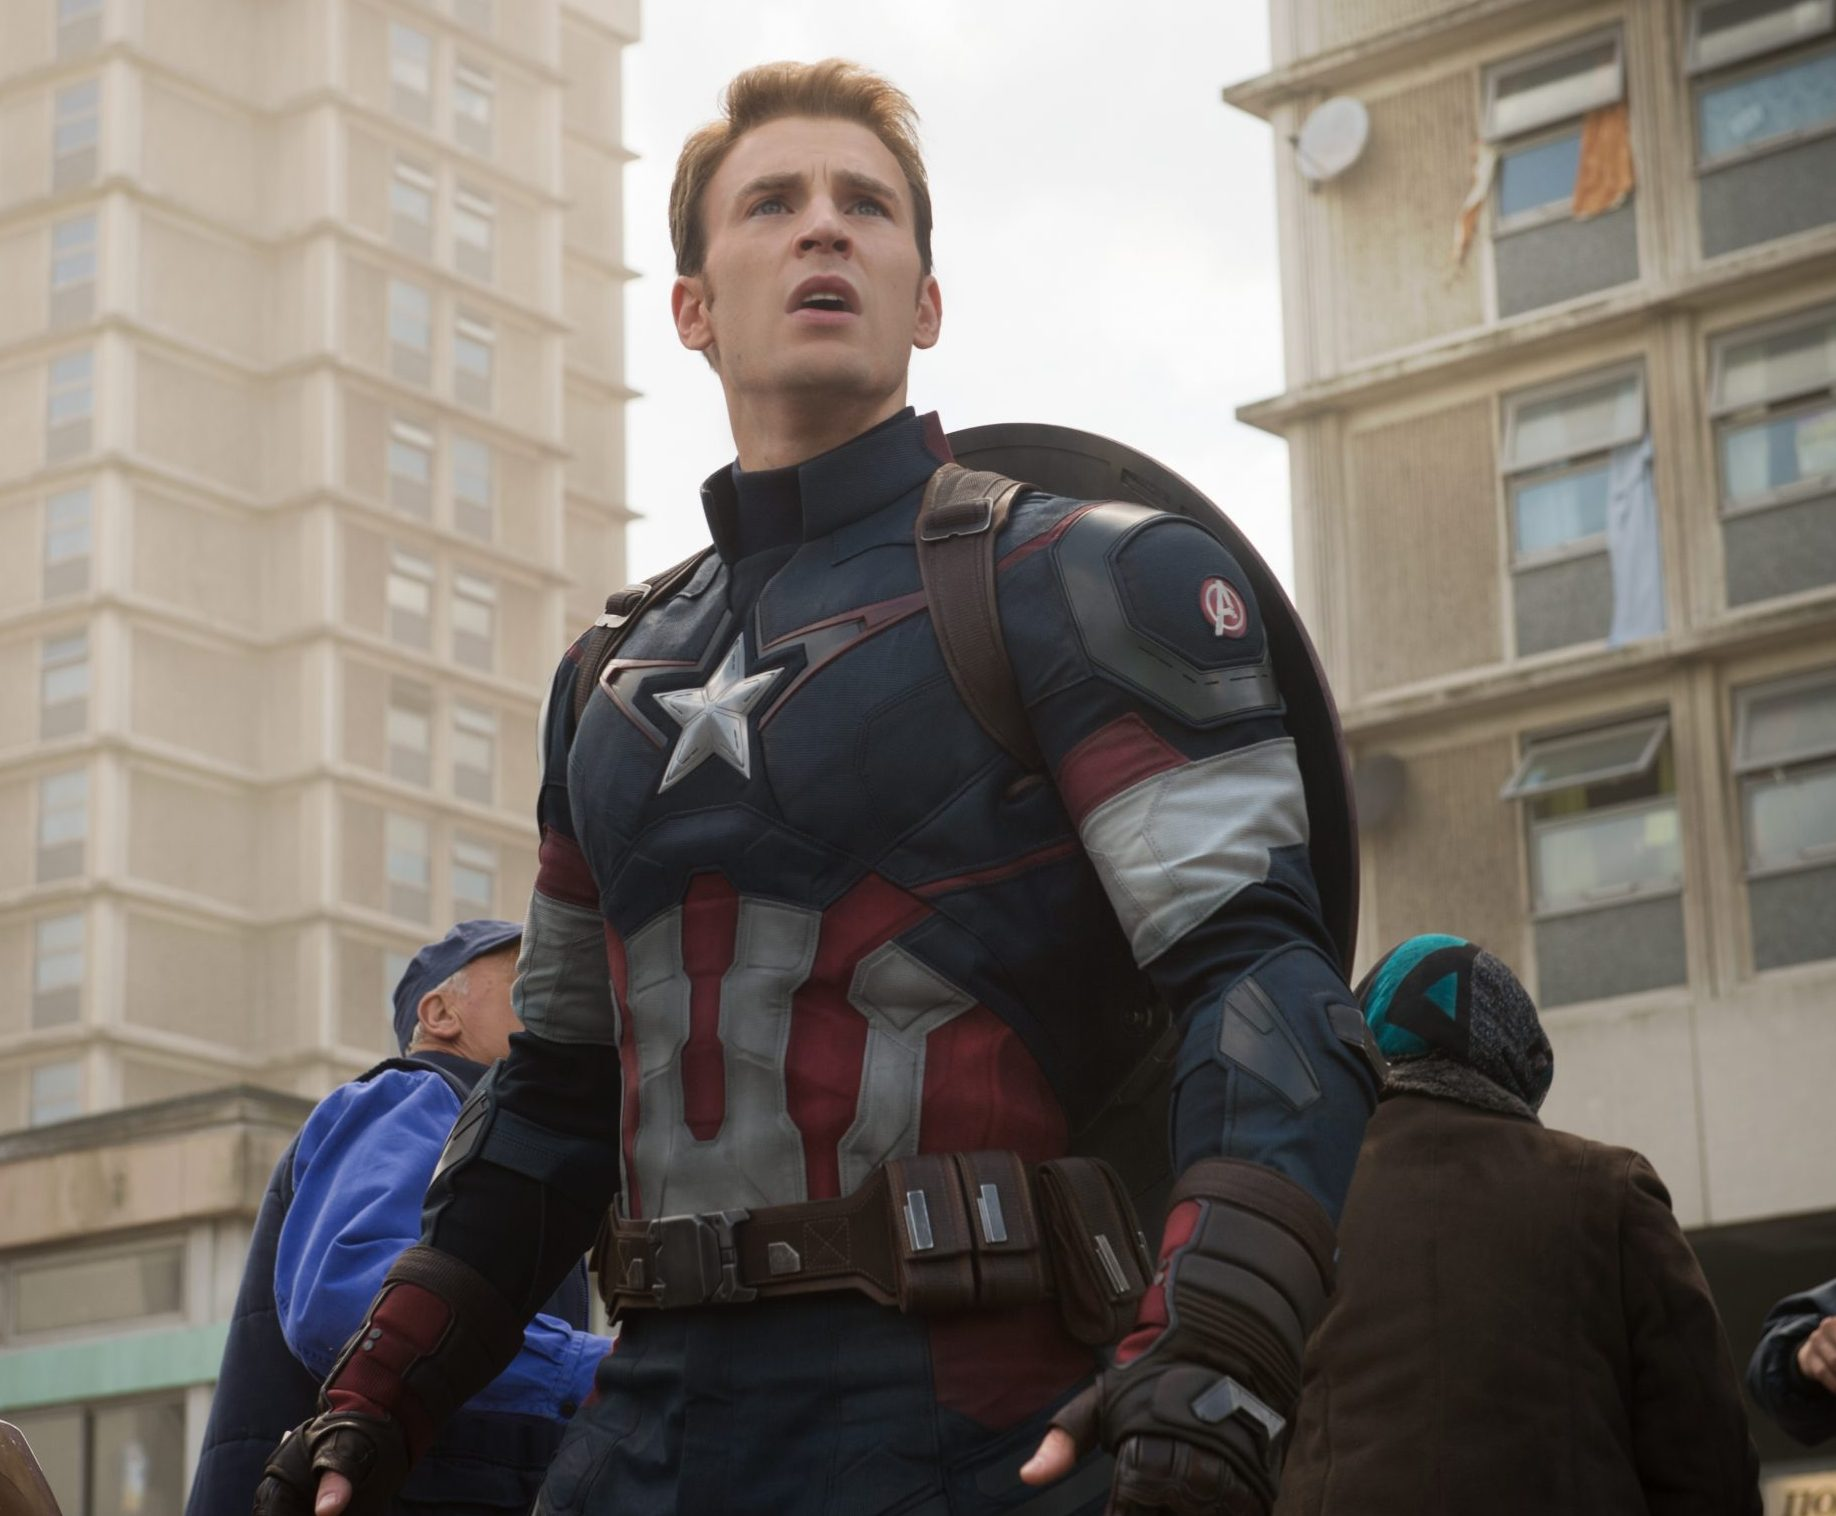 avengers age of ultron chris evans scaled e1625670231288 20 Things You Didn't Know About Chris Evans